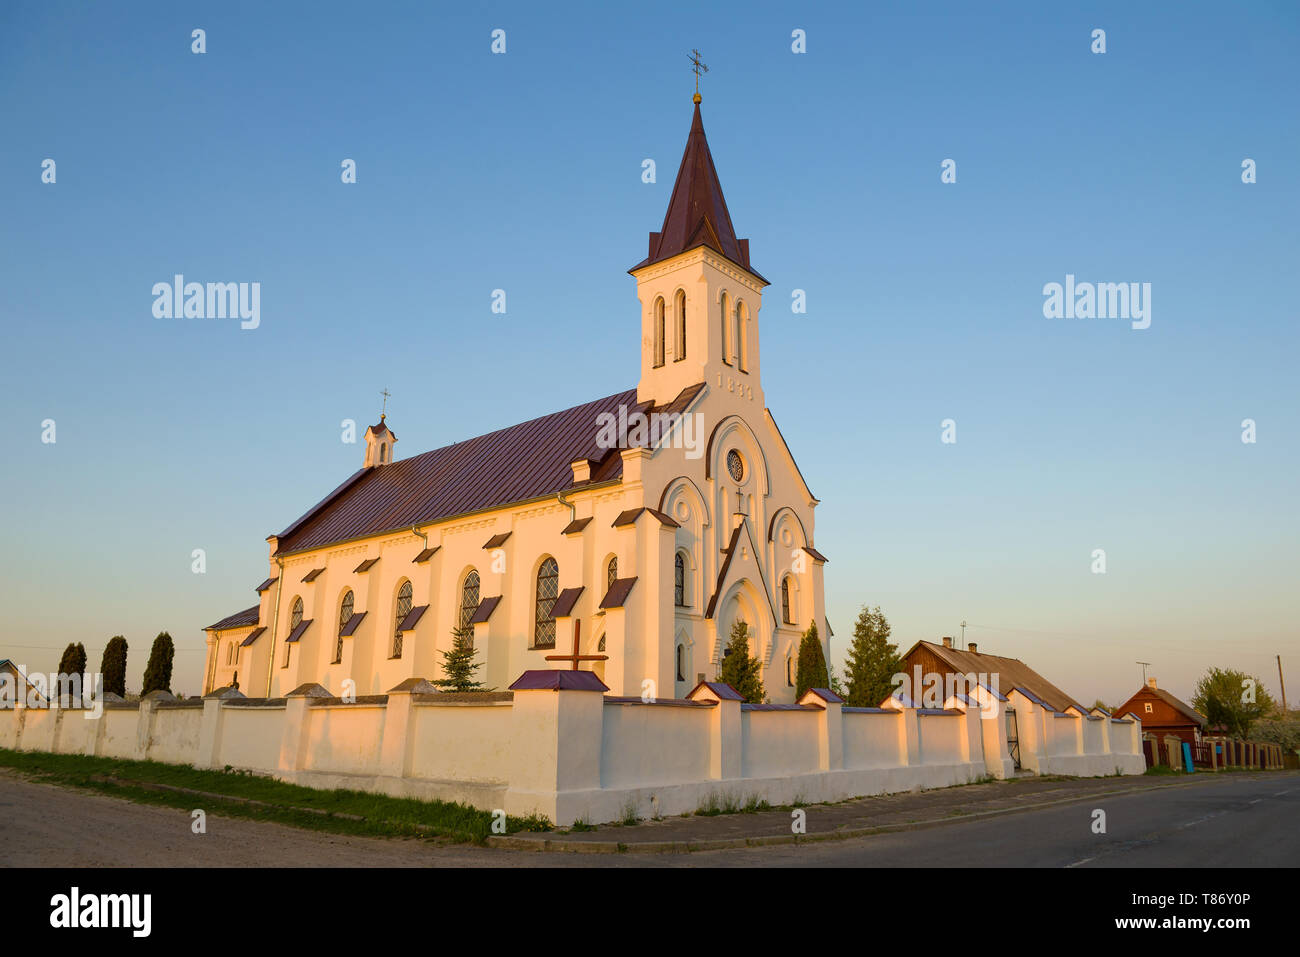 The ancient church of the Holy Trinity and the Holy Cross in April evening. Kossovo, Belarus - Stock Image